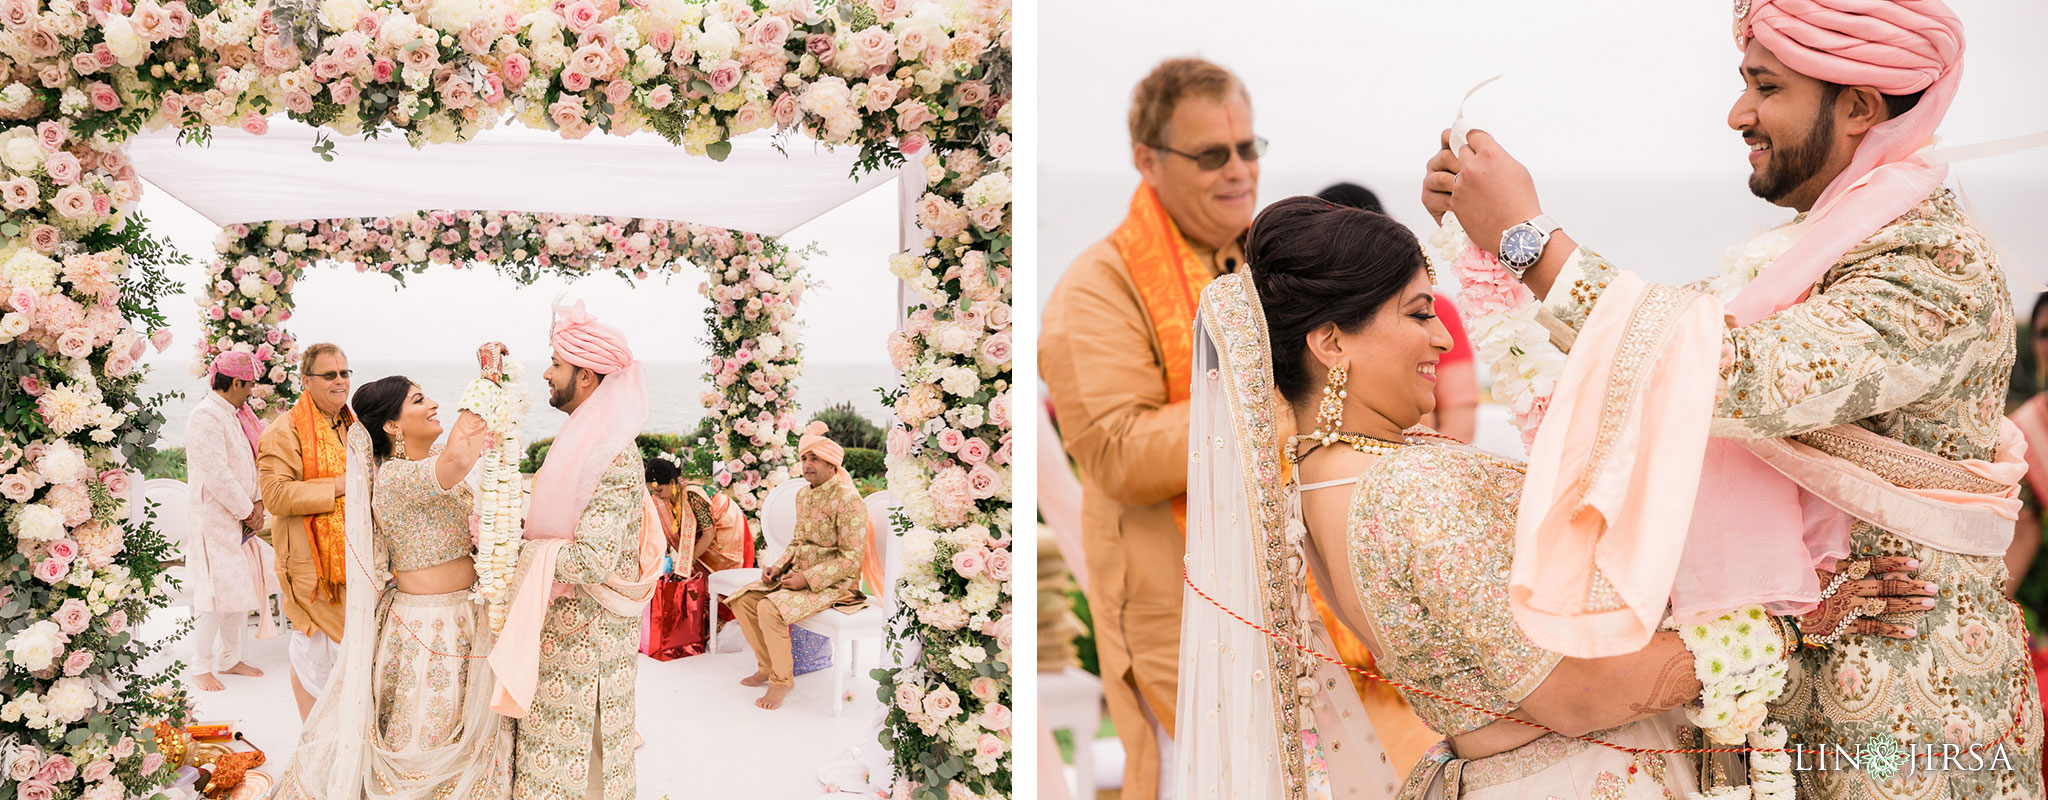 039 montage laguna beach indian wedding ceremony photography